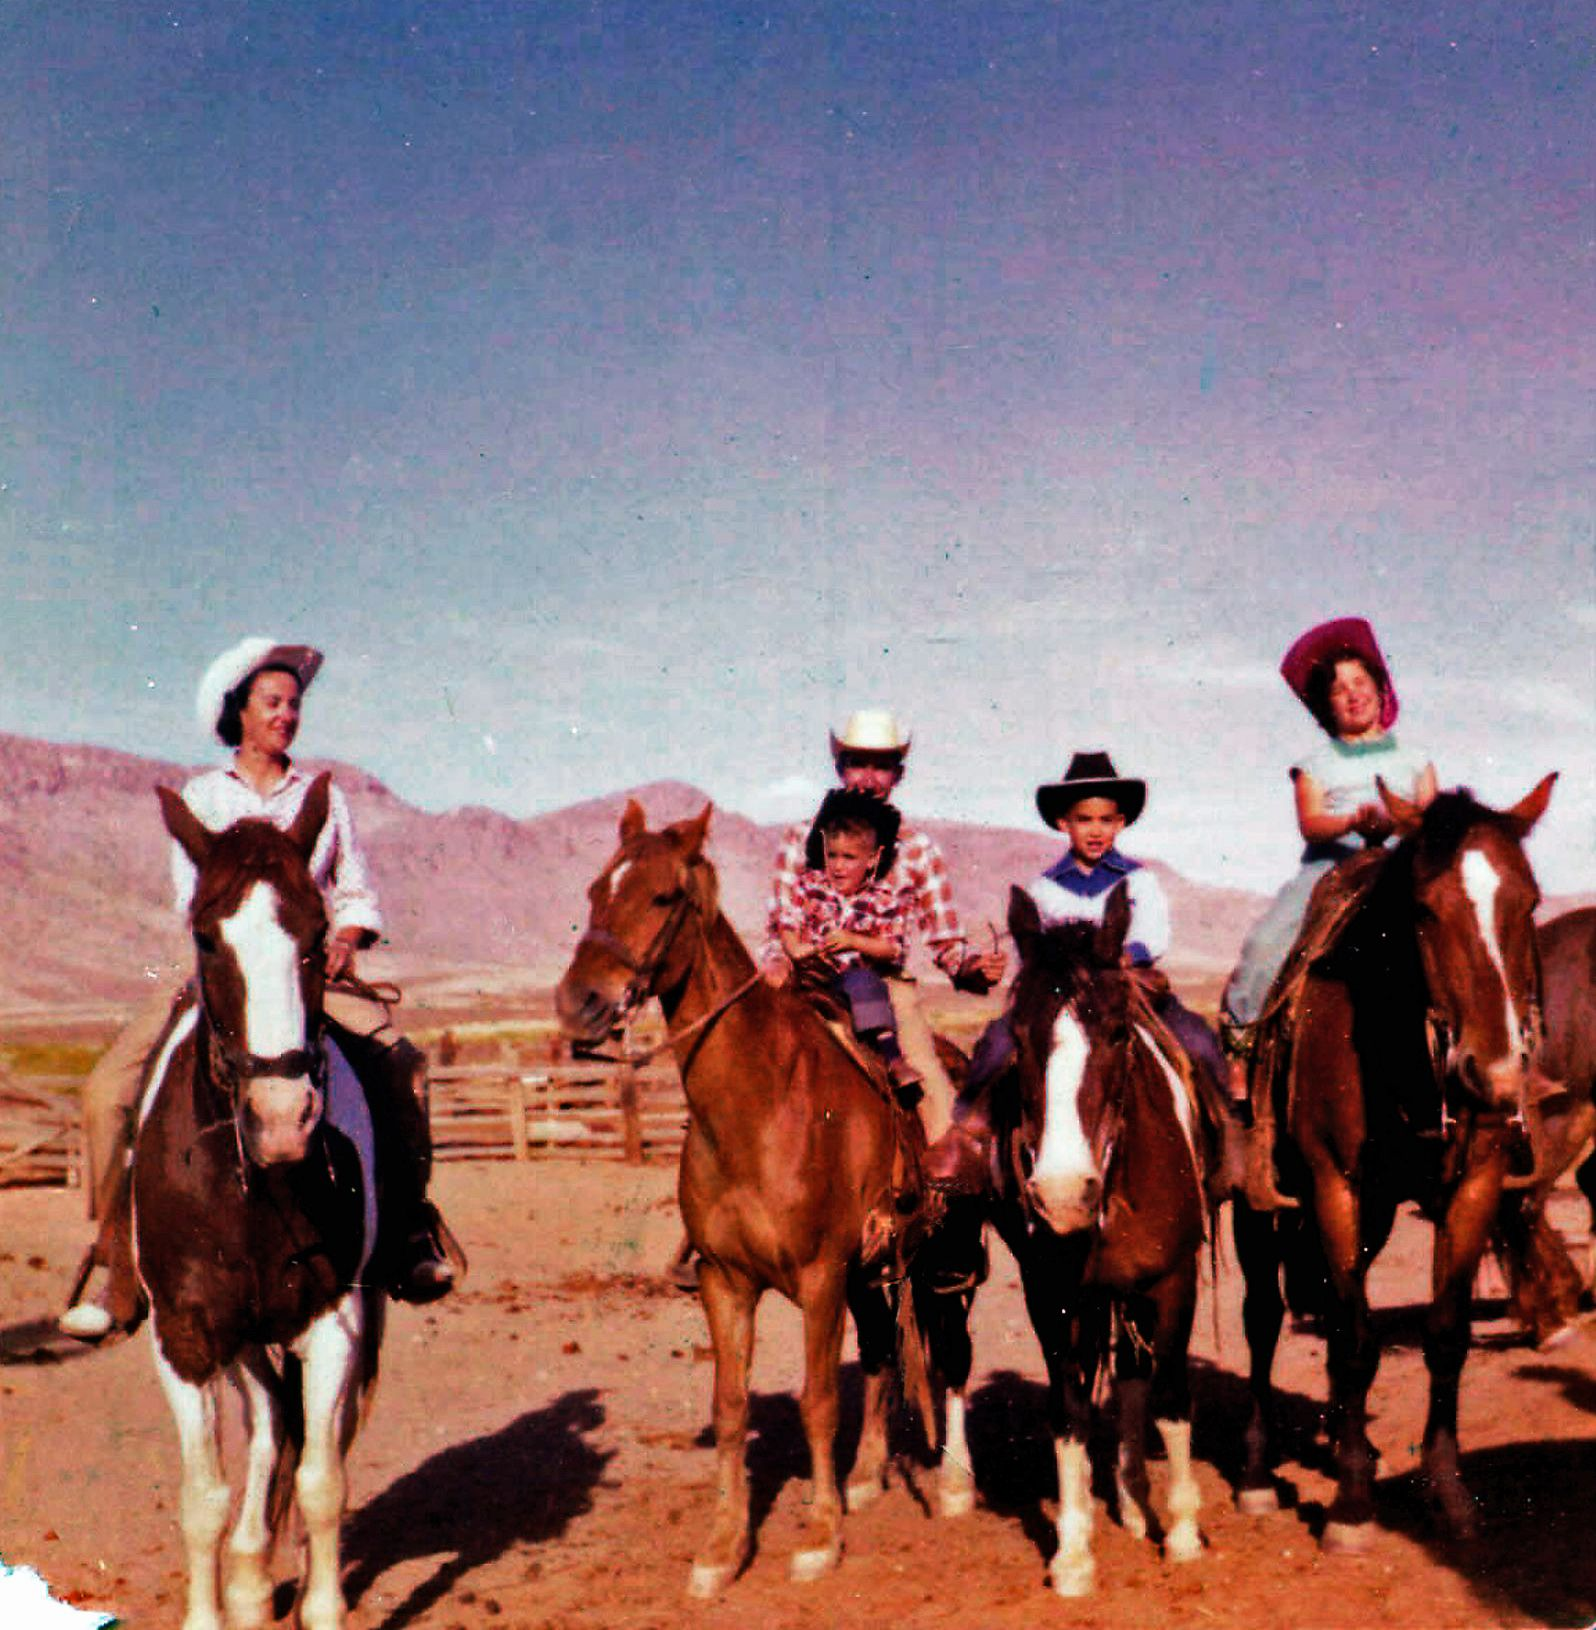 David Strip (center with a blue bandanna) with (left to right) his mother, father, brother Michael, and sister Lynn in 1957, on a family vacation to a dude ranch in Demming, New Mexico.